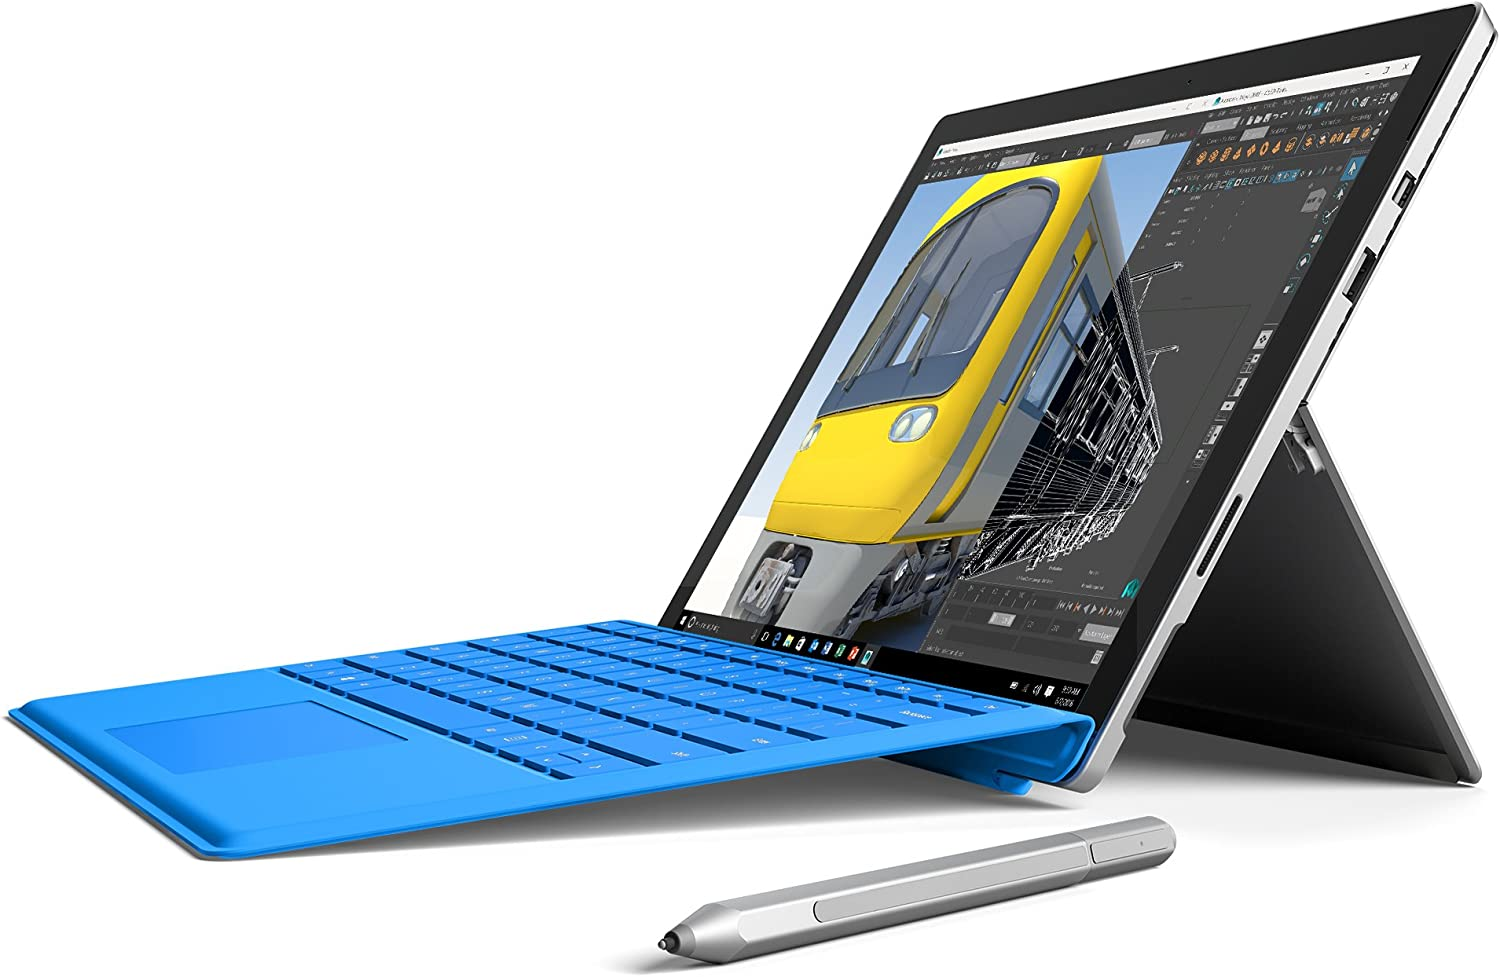 Microsoft Surface Pro 4 (256 GB, 8 GB RAM, Intel Core i7e)